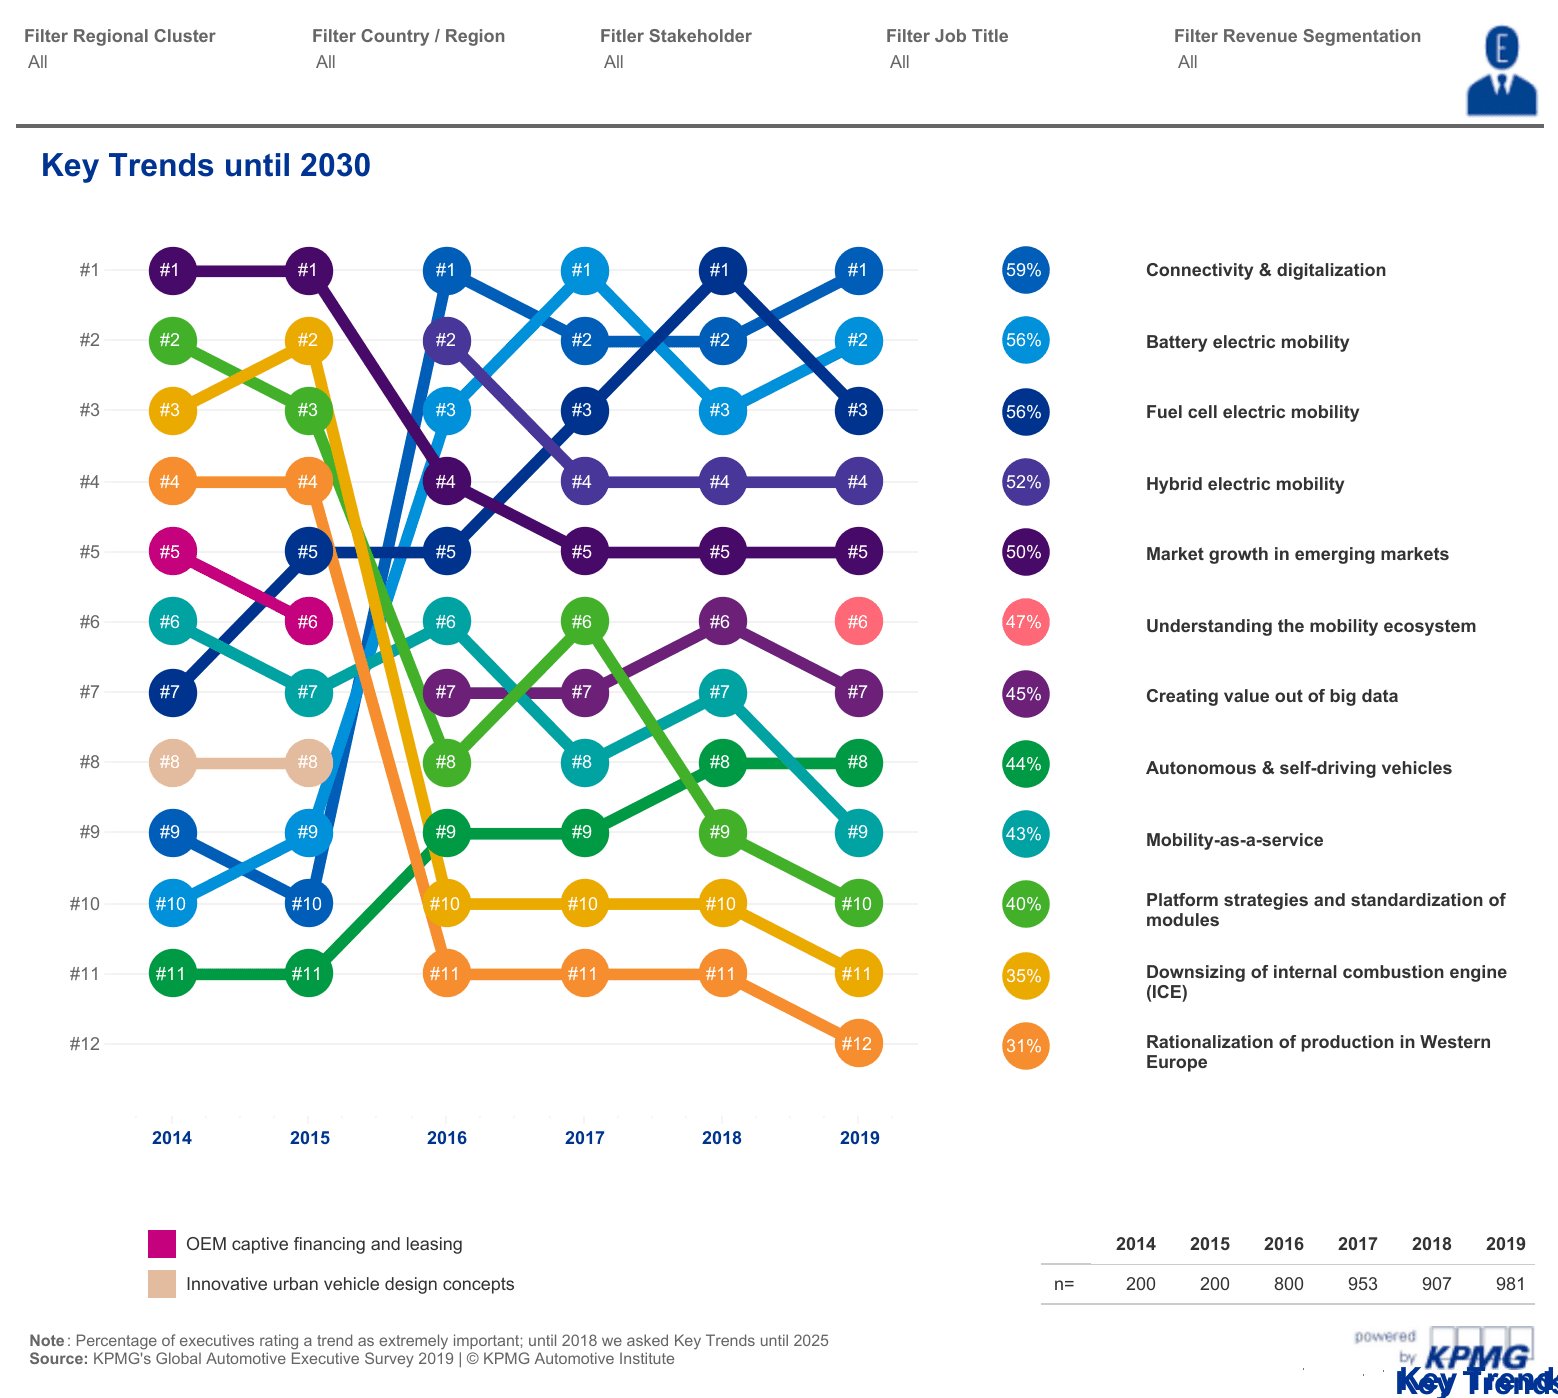 KPMG: Connectivity and Digitization is Growing